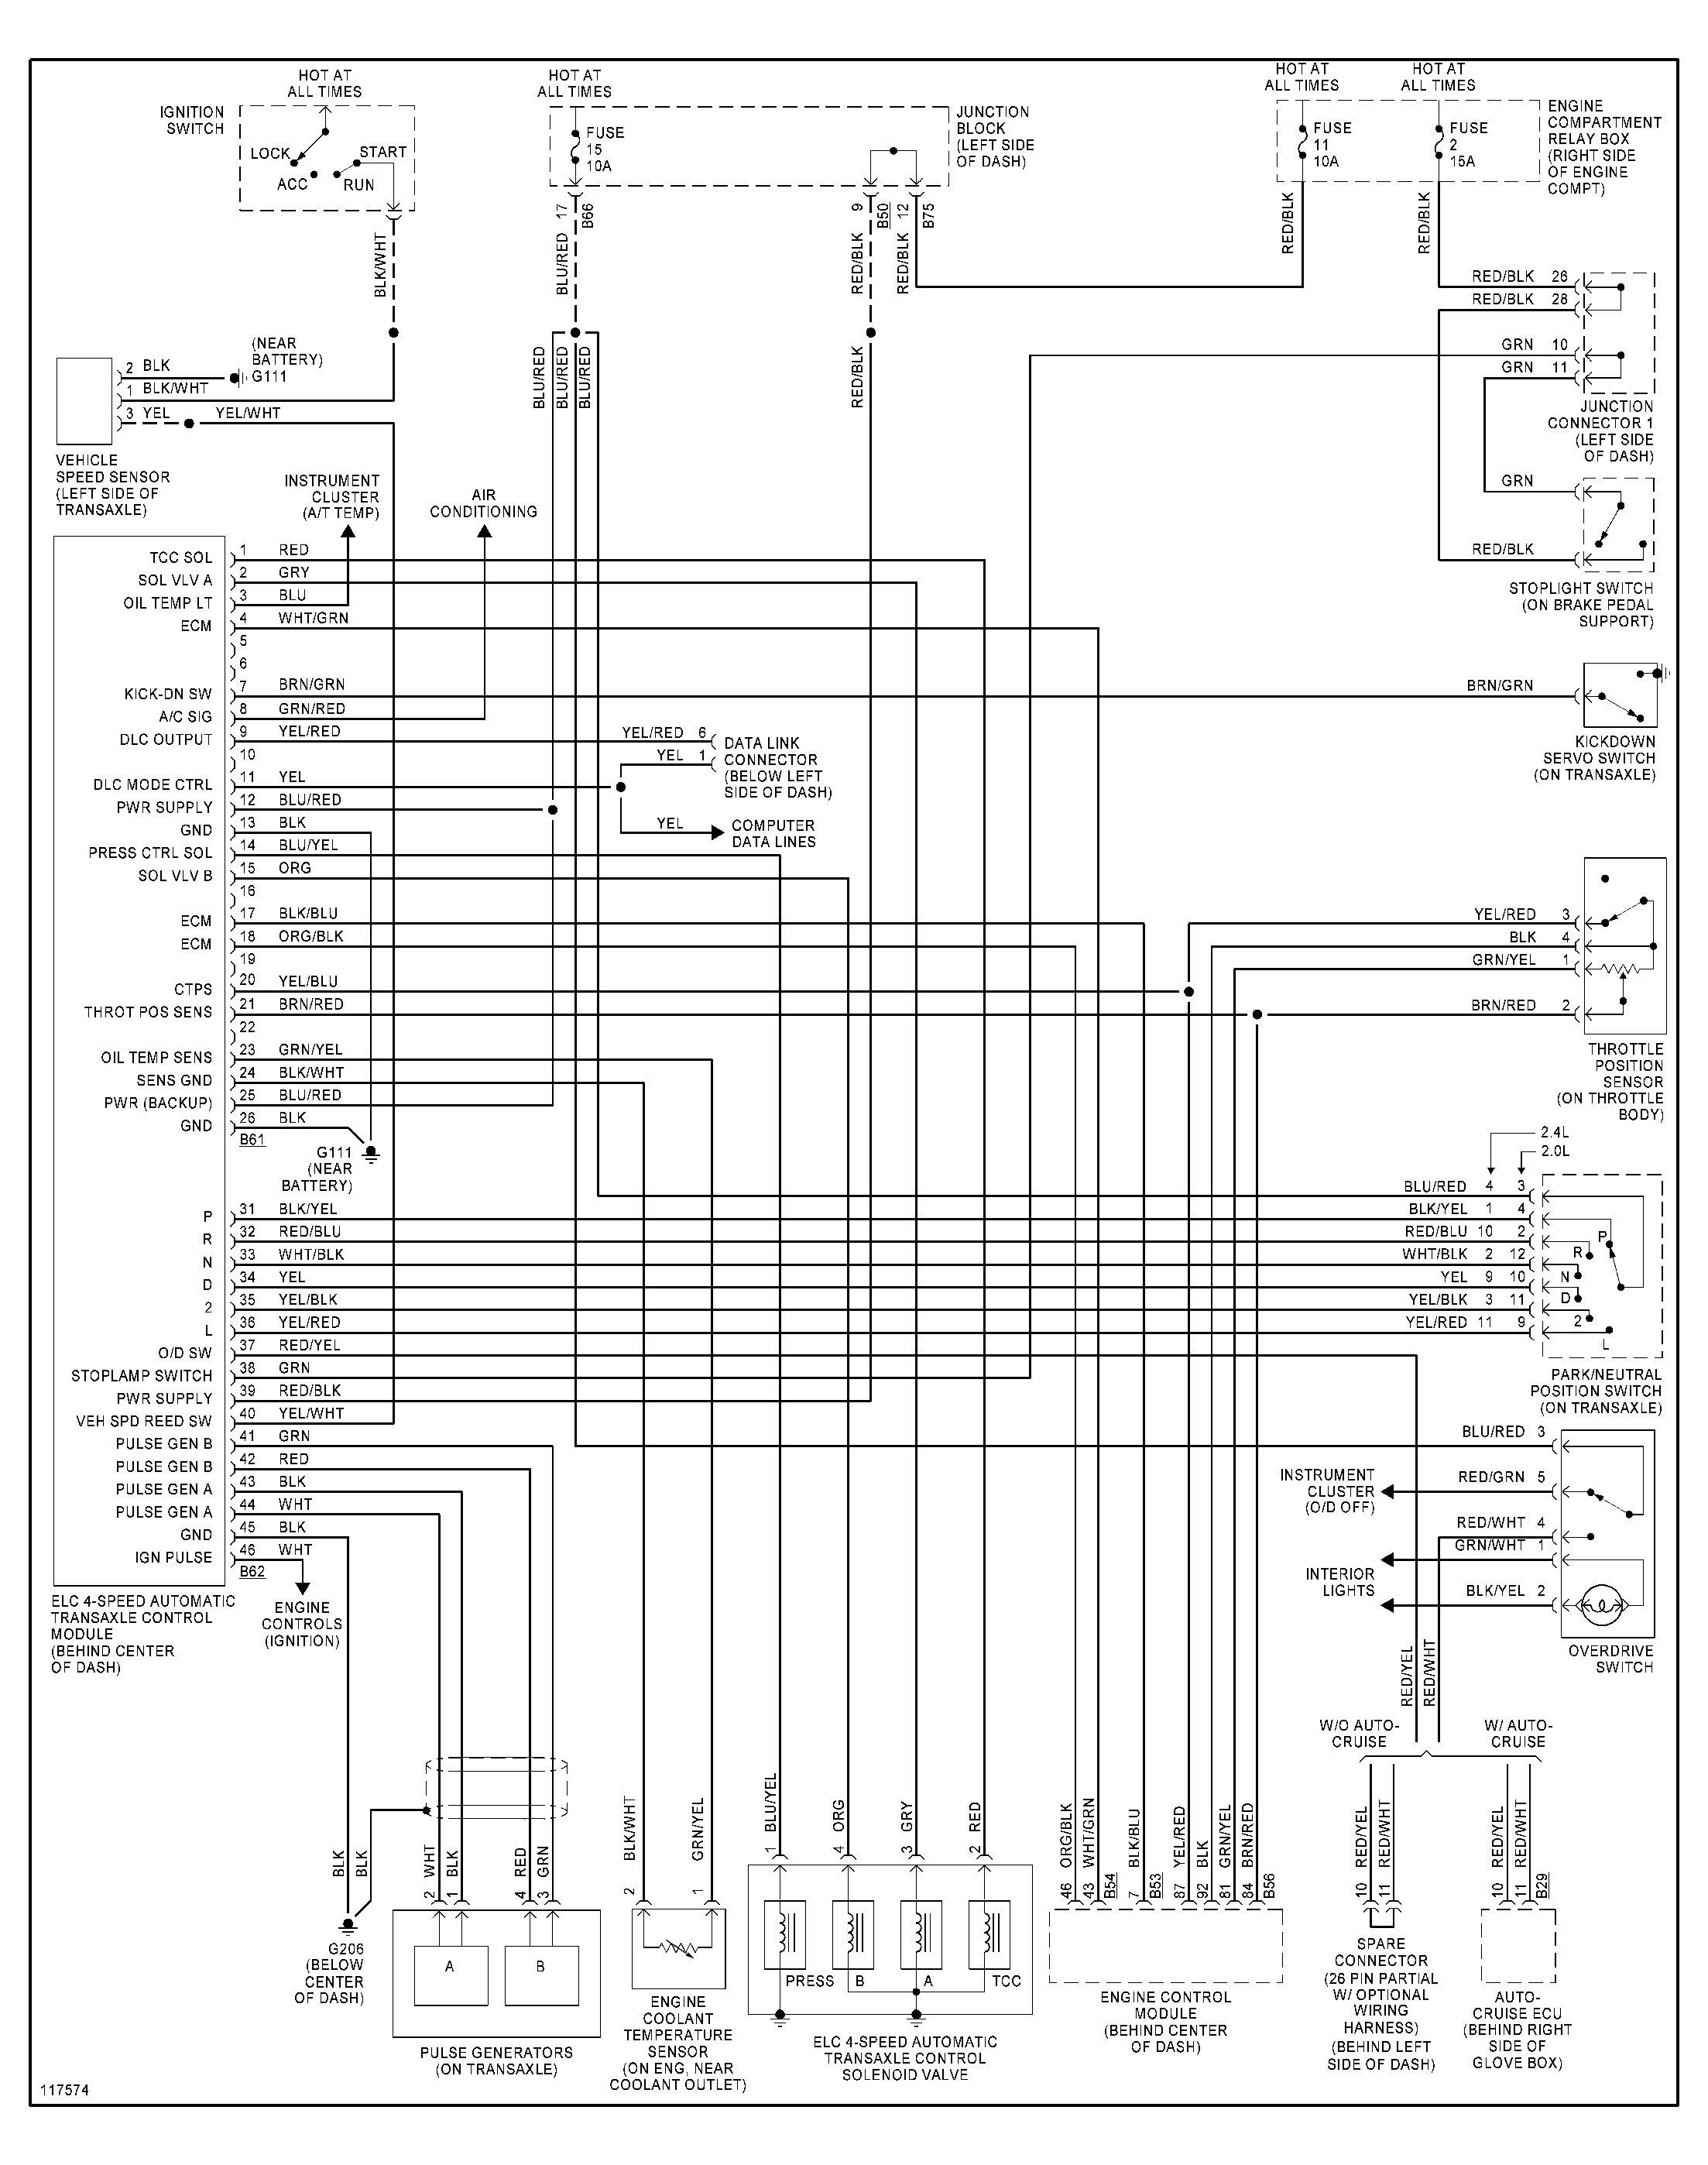 1999 jeep wrangler heater wiring diagram - wiring diagram  snail-inspection-c - snail-inspection-c.consorziofiuggiturismo.it  consorziofiuggiturismo.it